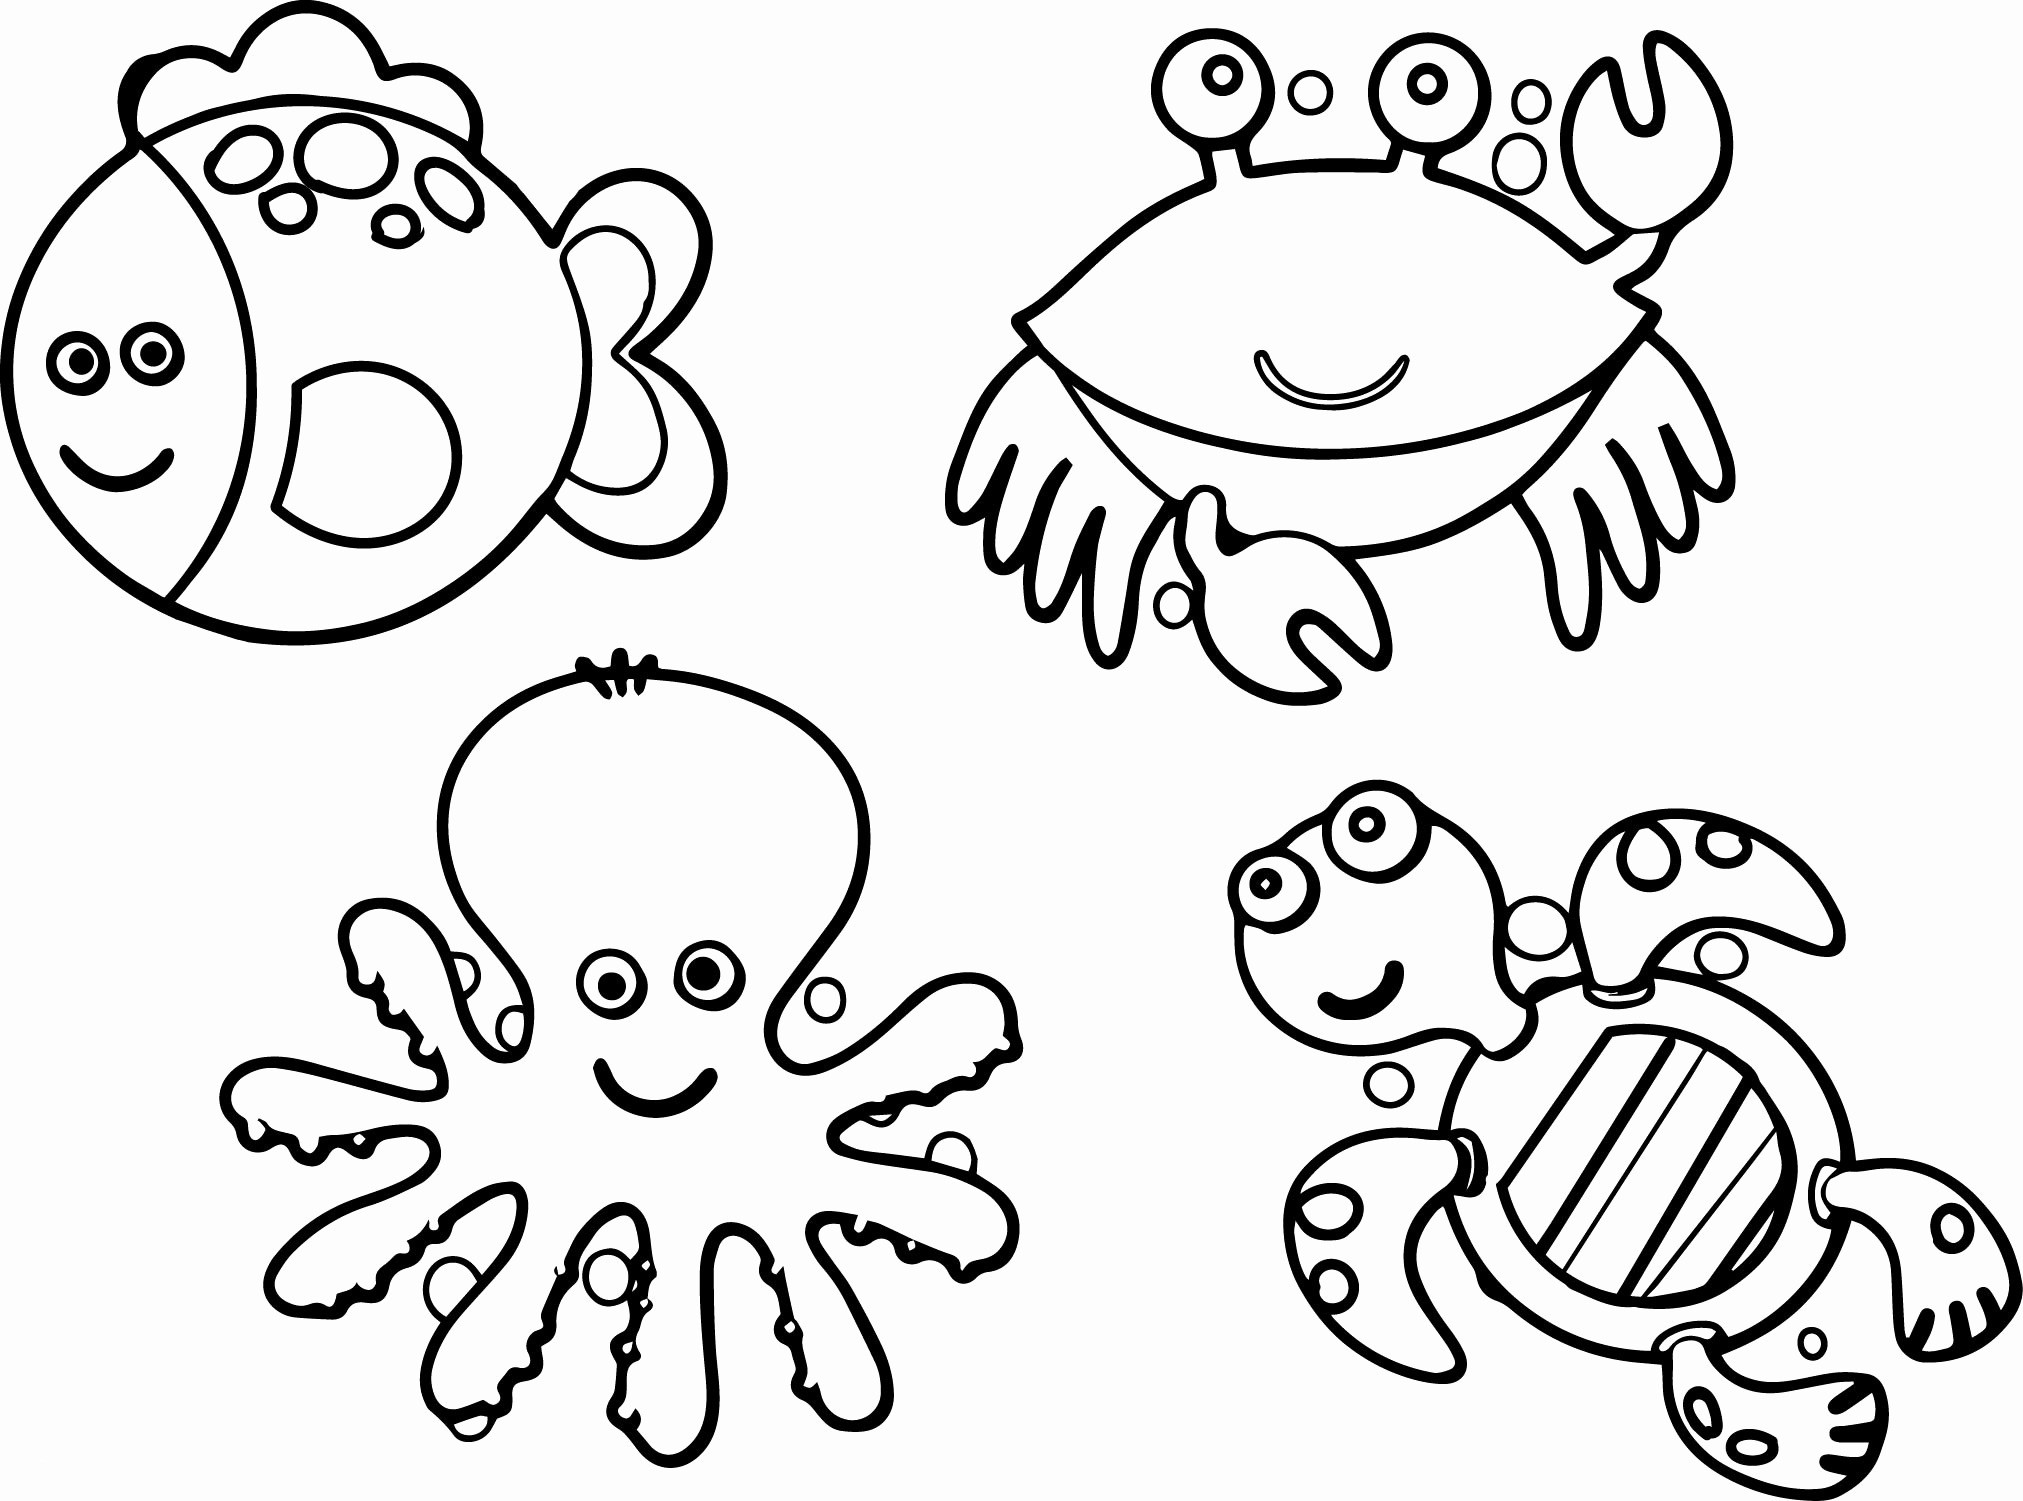 coloring pictures of sea animals animal coloring pages best coloring pages for kids sea animals pictures of coloring